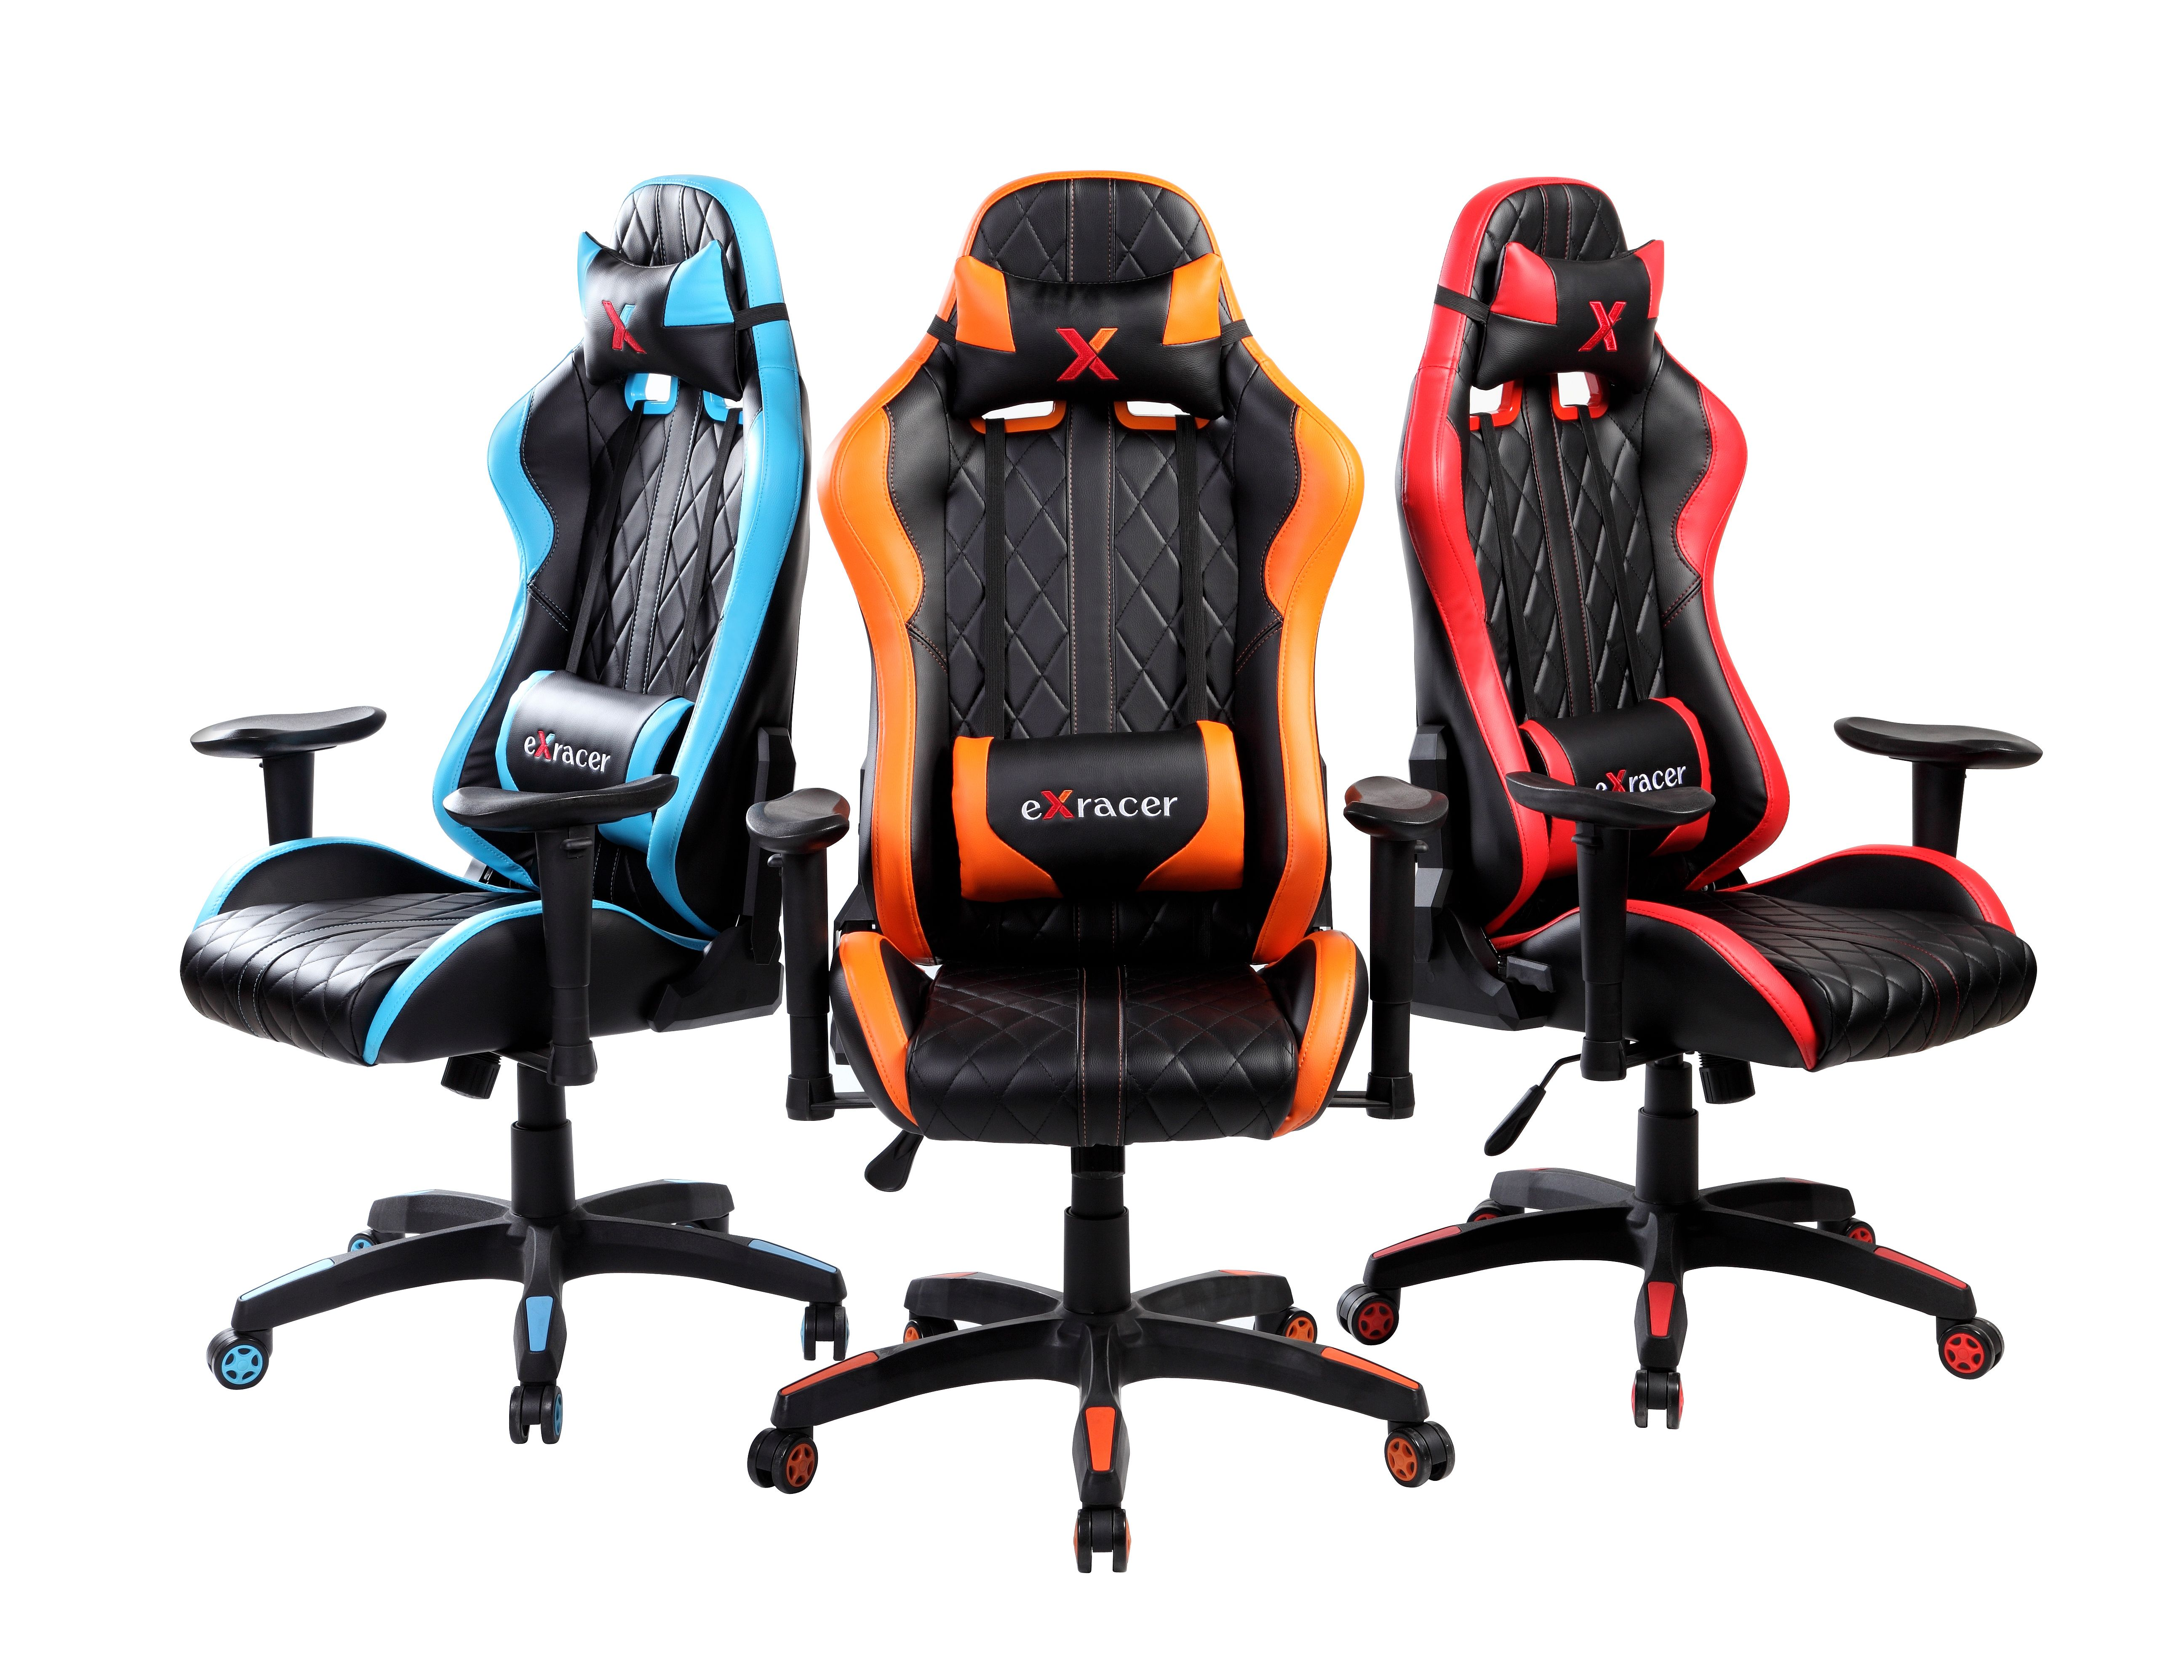 30 Discount on Gaming Chair. Limited offers. Bar stools